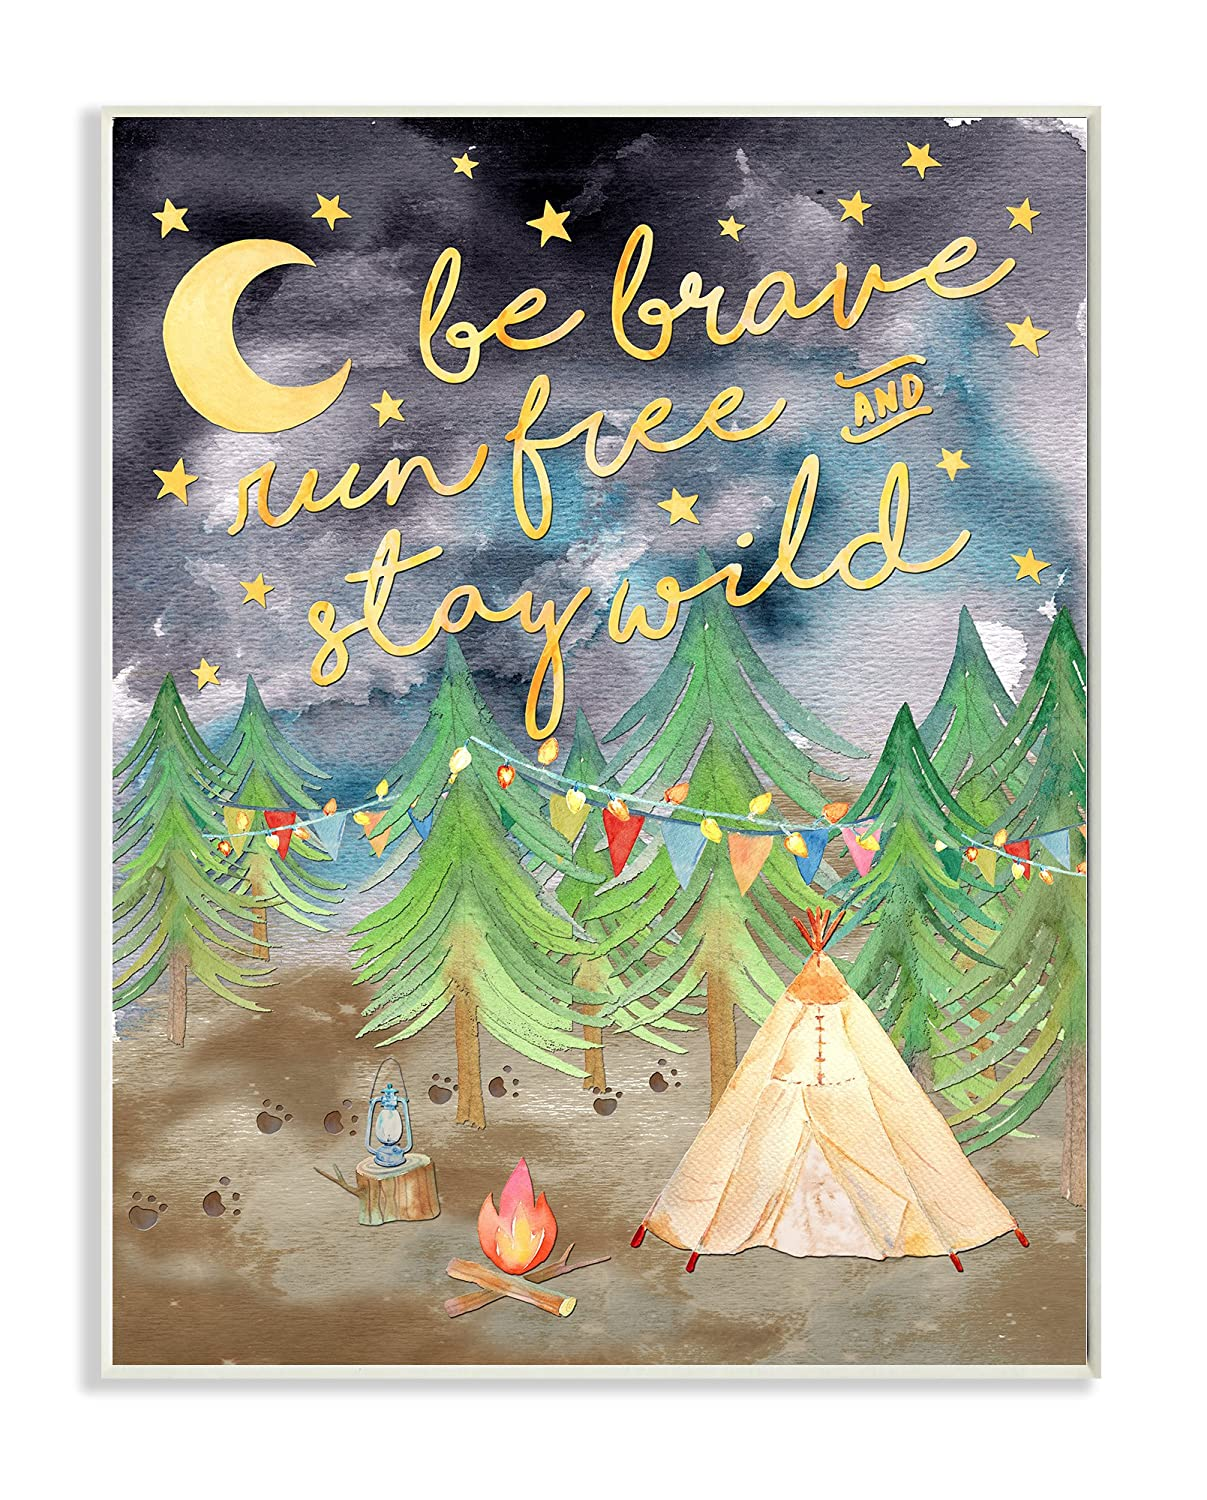 Stupell Home Décor Be Brave Camping Painting Wall Plaque Art, 10 x 0.5 x 15, Proudly Made in USA Stupell Industries brp-1816_wd_10x15